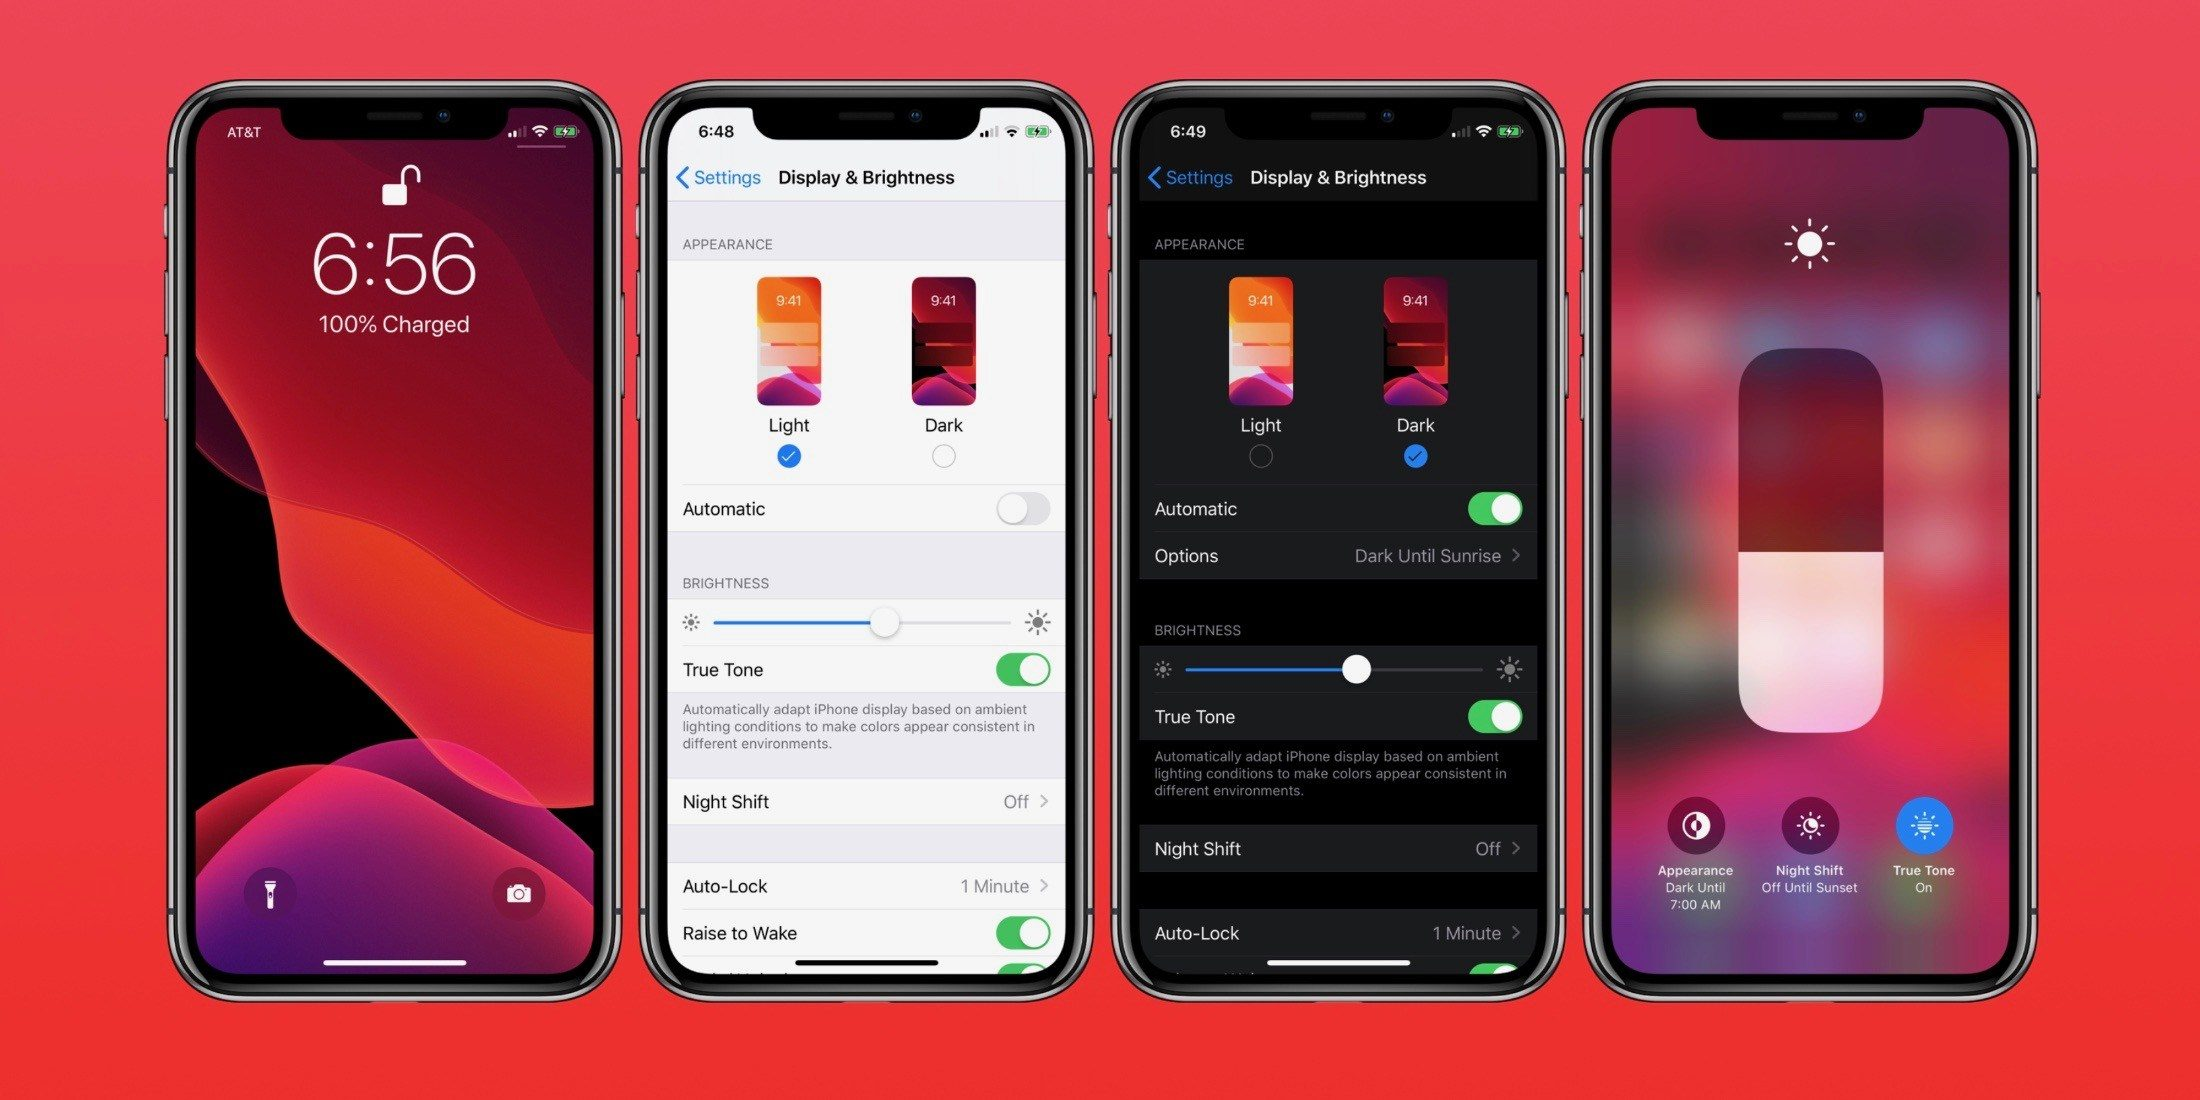 How to use Dark Mode on iPhone in iOS 13